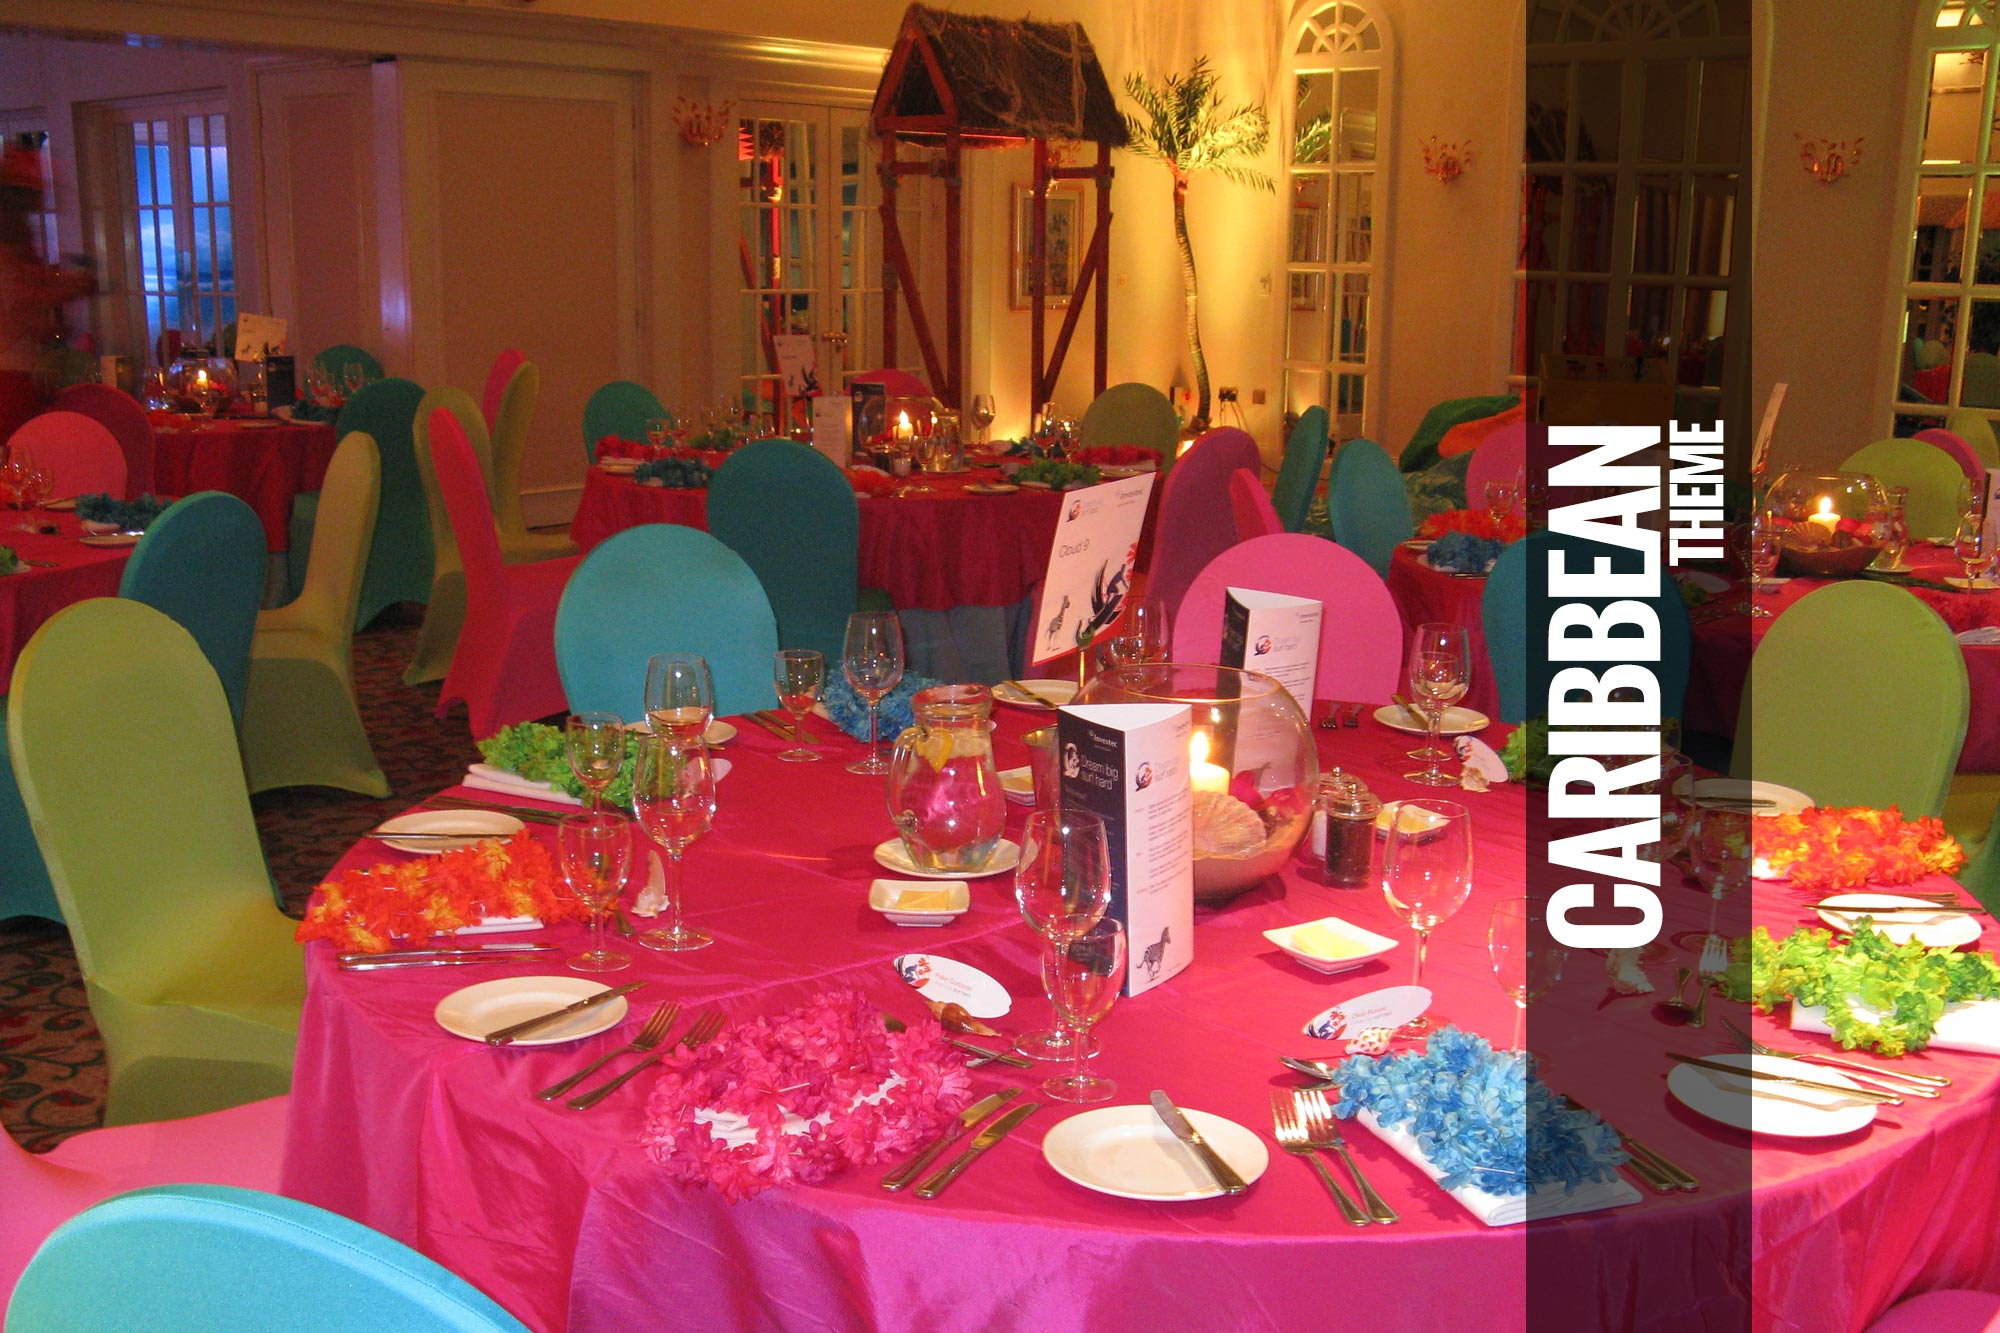 Caribbean Theme Party Ideas On Pinterest: Caribbean Themed Events & Parties